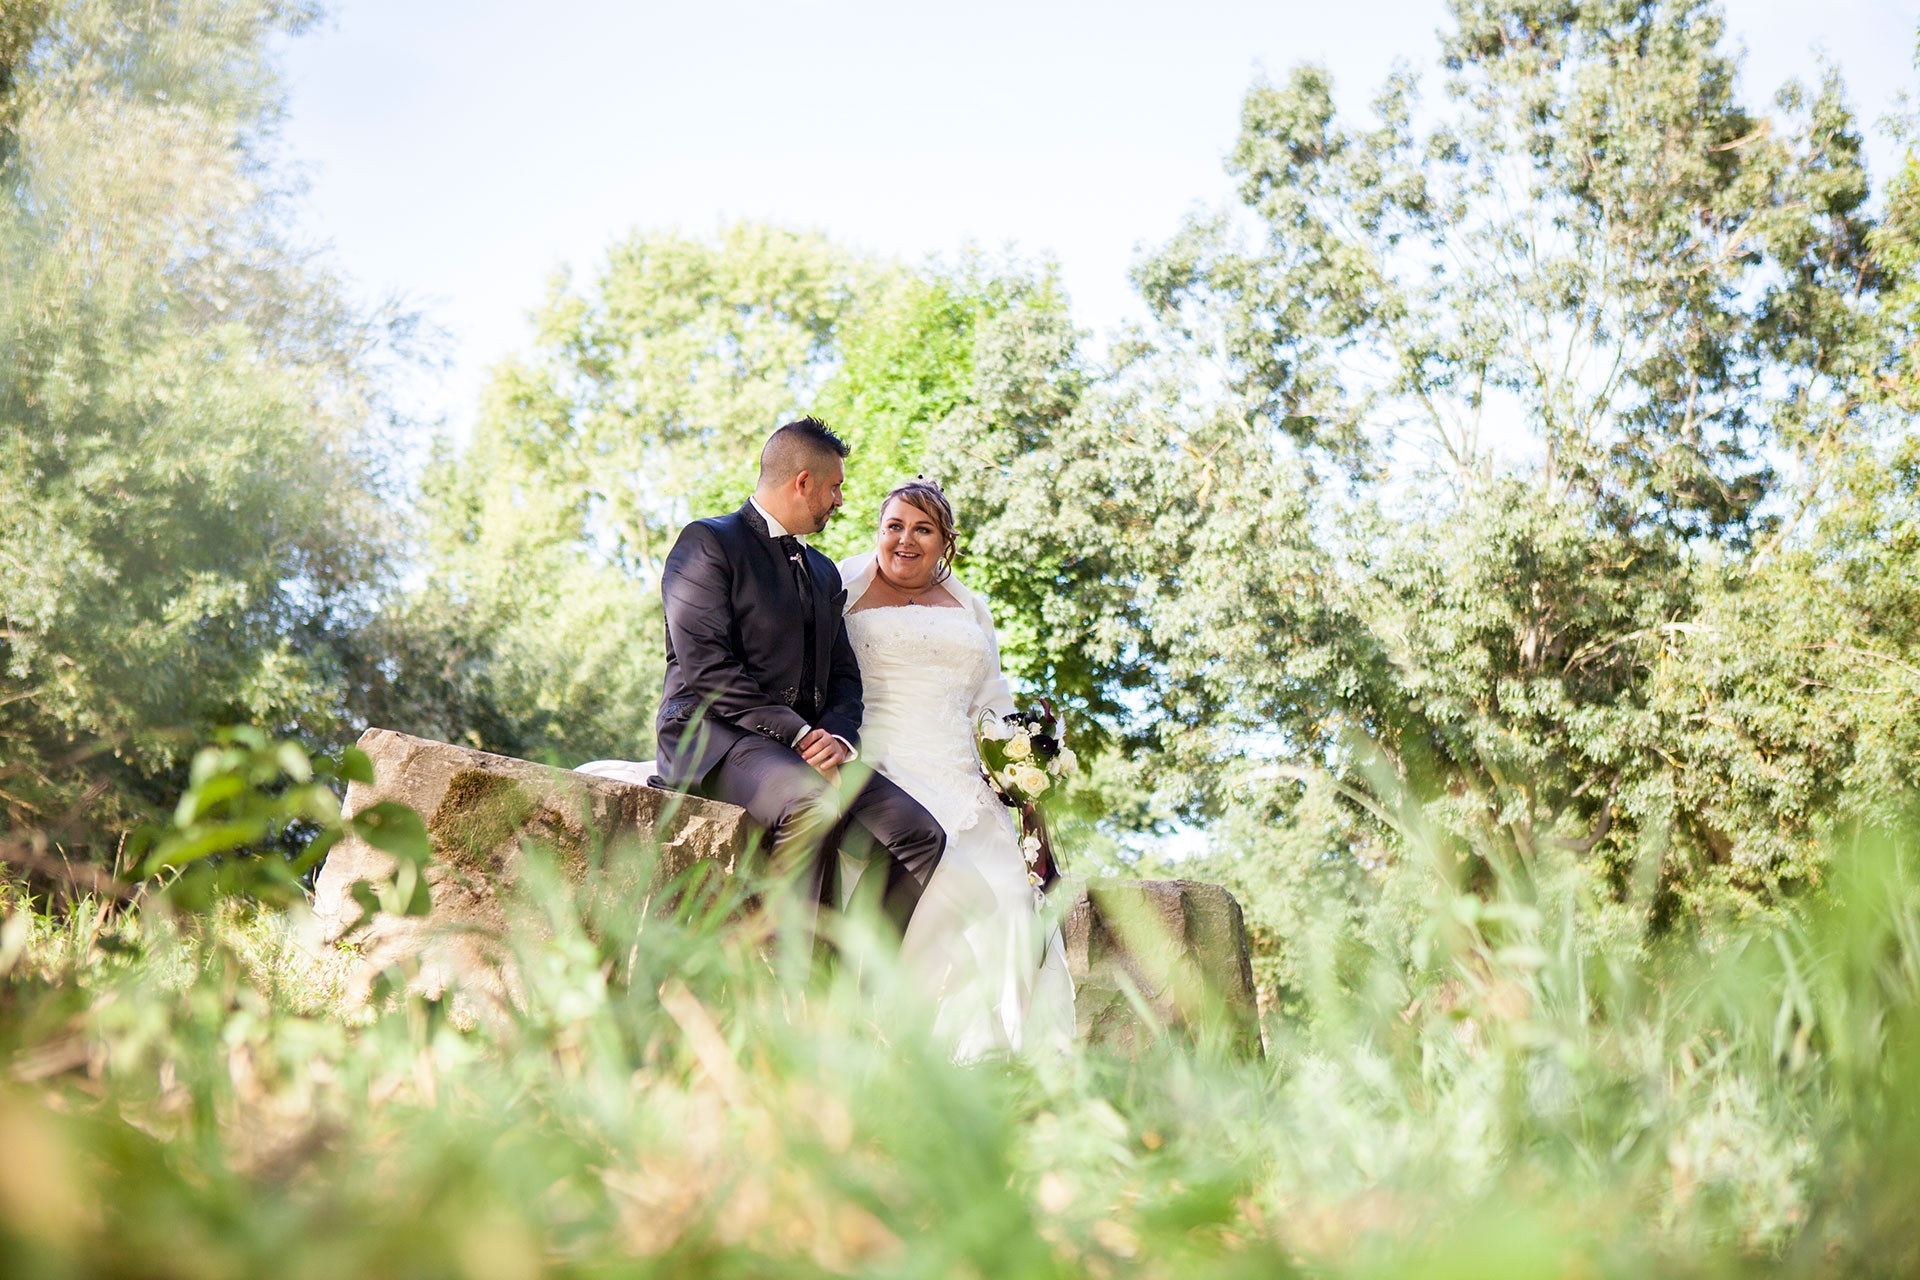 particuliers-evenements-mariages-oui-elodie&wilson-20